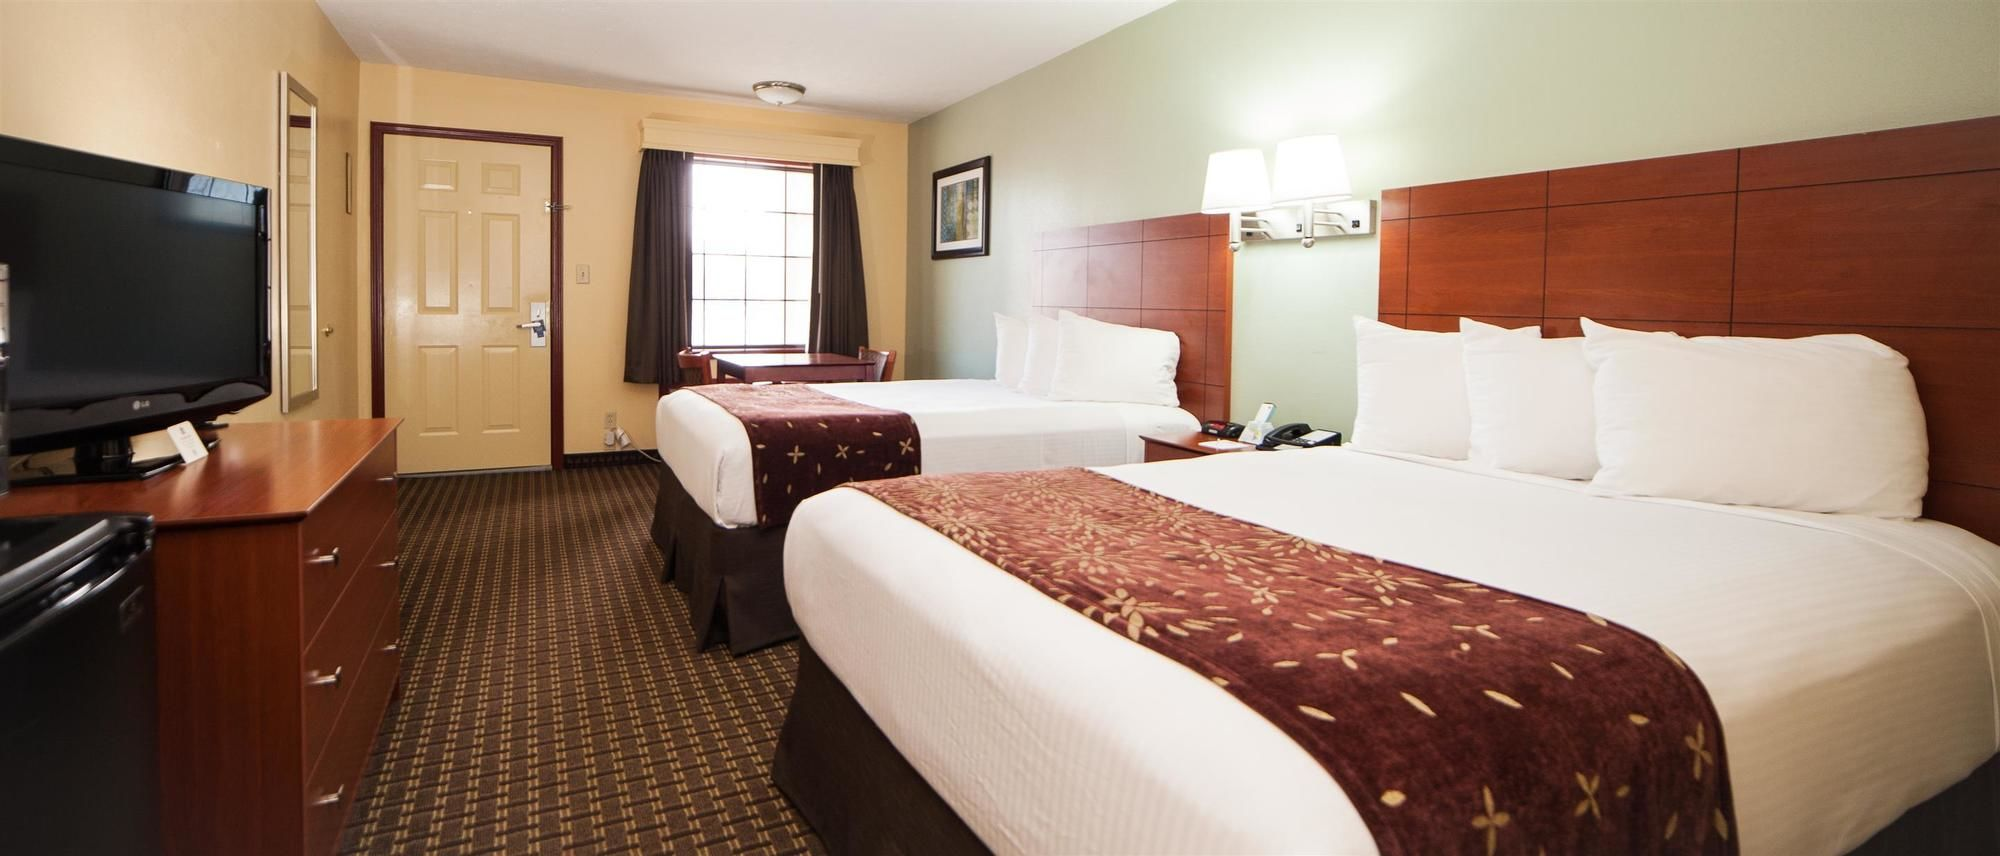 Best Western Acworth Inn in Acworth, GA